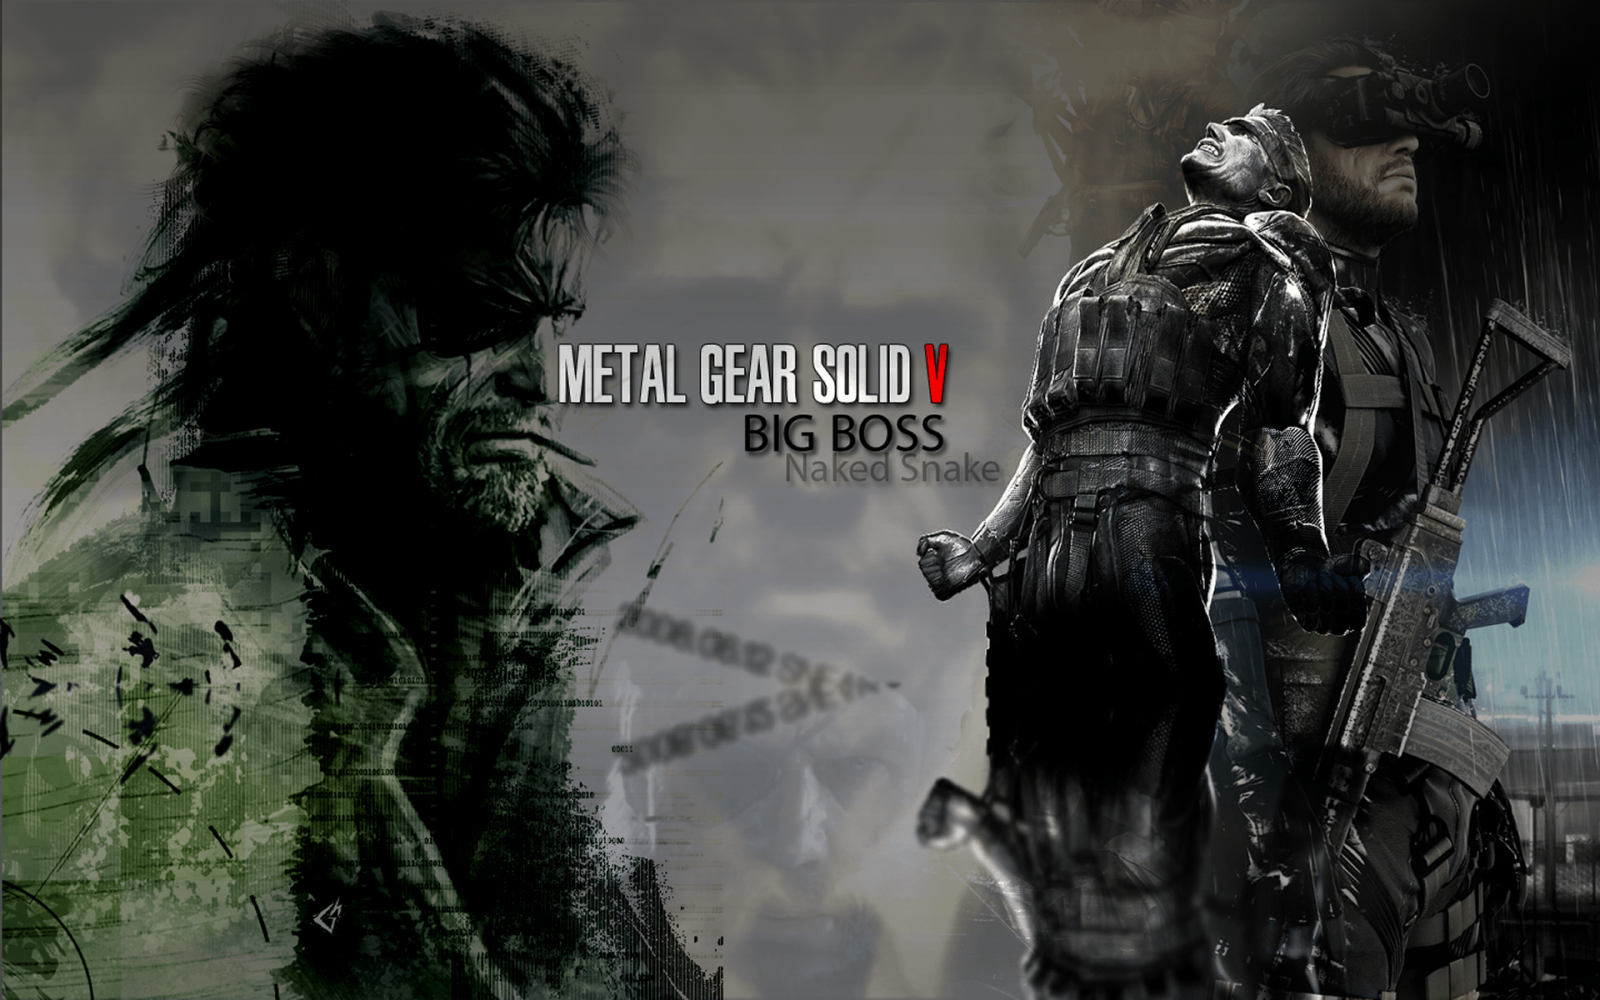 Hd Metal Gear Solid Wallpaper Posted By Ryan Anderson